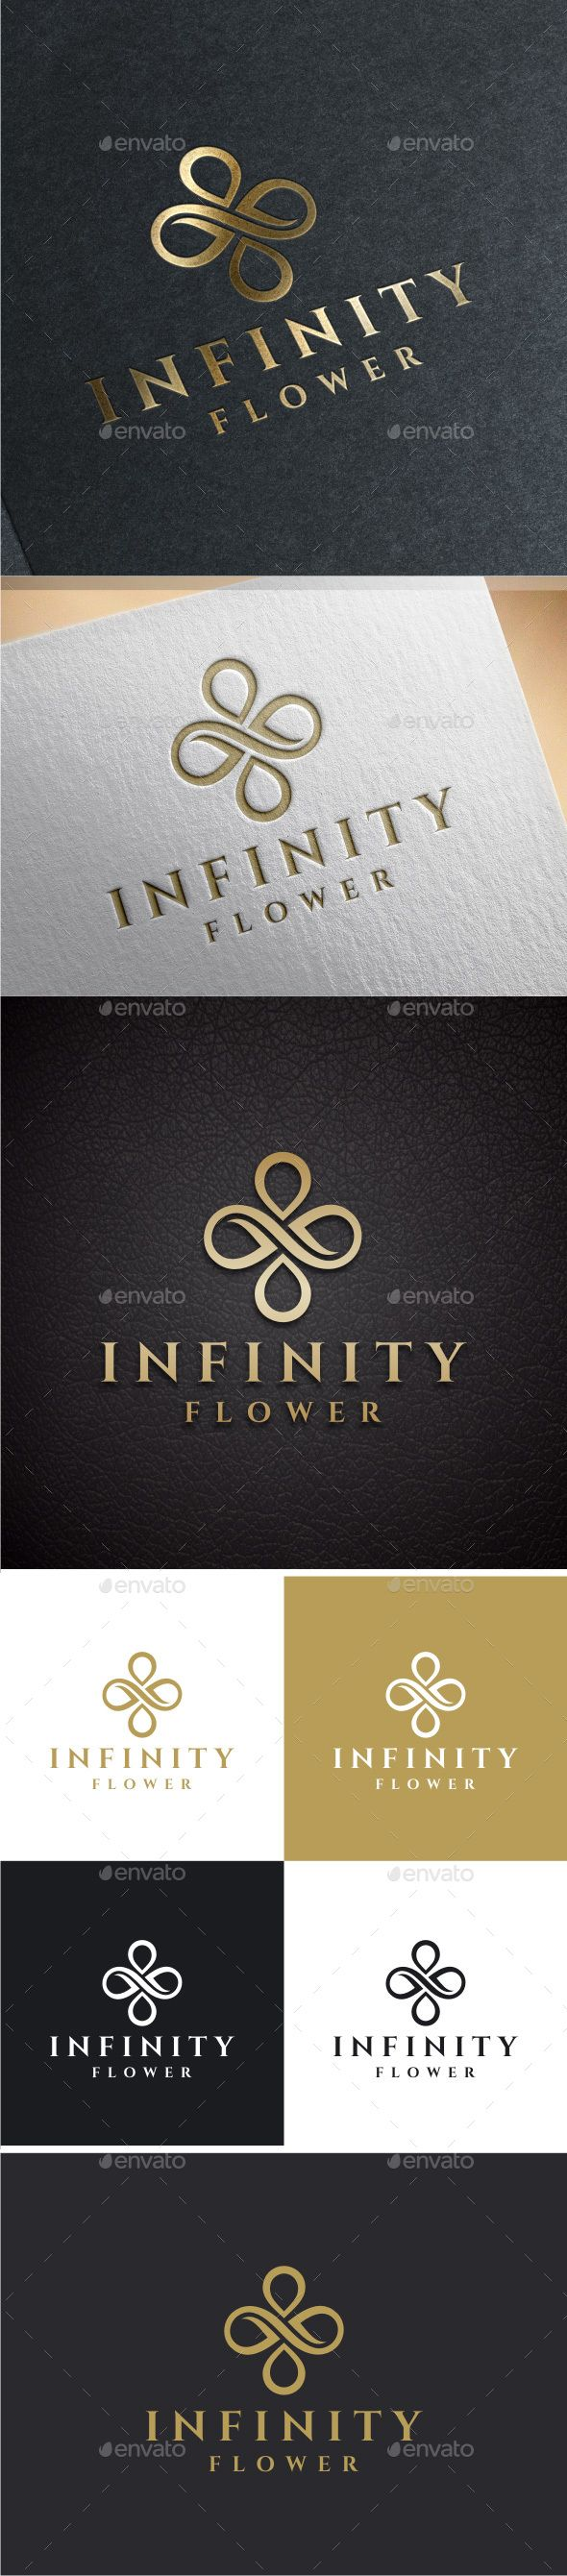 Infinity Flower Logo — Photoshop PSD #gold #florist • Available here → https://graphicriver.net/item/infinity-flower-logo/8514414?ref=pxcr